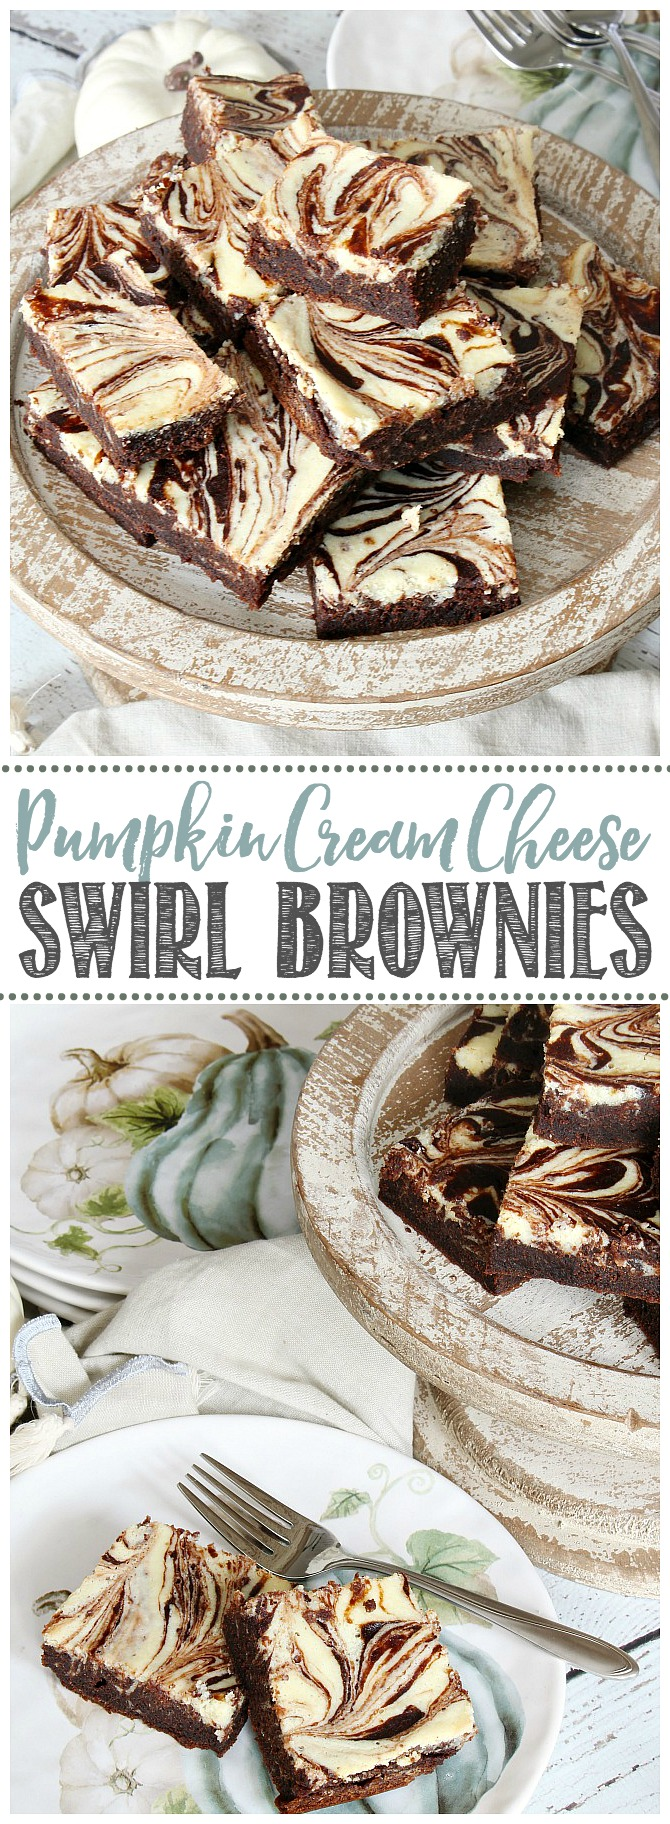 Pumpkin chocolate cream cheese swirl brownies on a wooden cake stand.